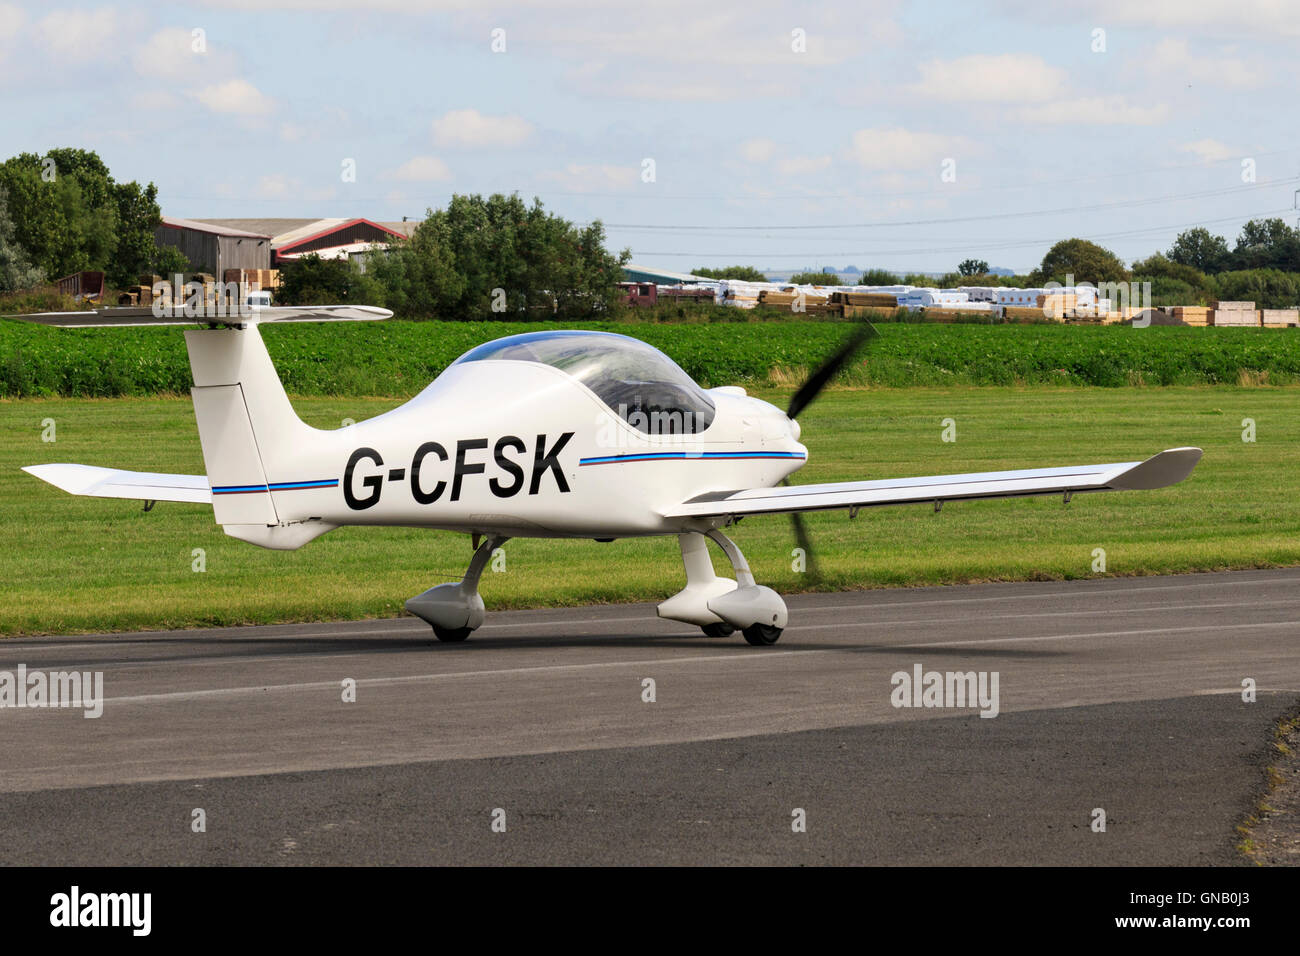 Dyn'Aero MCR-01 VLA Sportster G-CFSK taxiing at Breighton Airfield - Stock Image